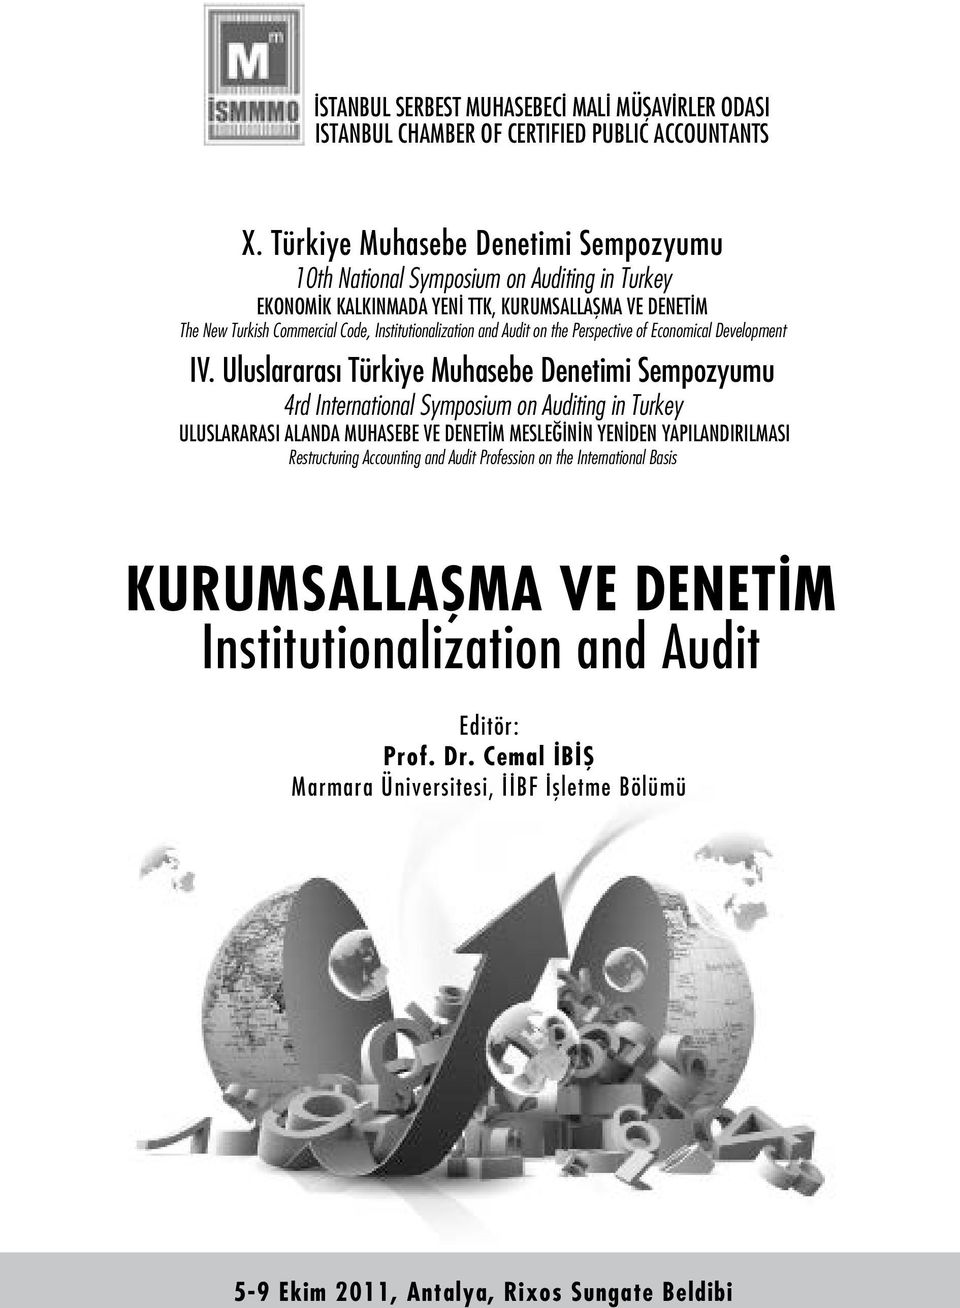 Auditing in Turkey ULUSLARARASI ALANDA MUHASEBE VE DENETİM MESLEĞİNİN YENİDEN YAPILANDIRILMASI Restructuring Accounting and Audit Profession on the International Basis